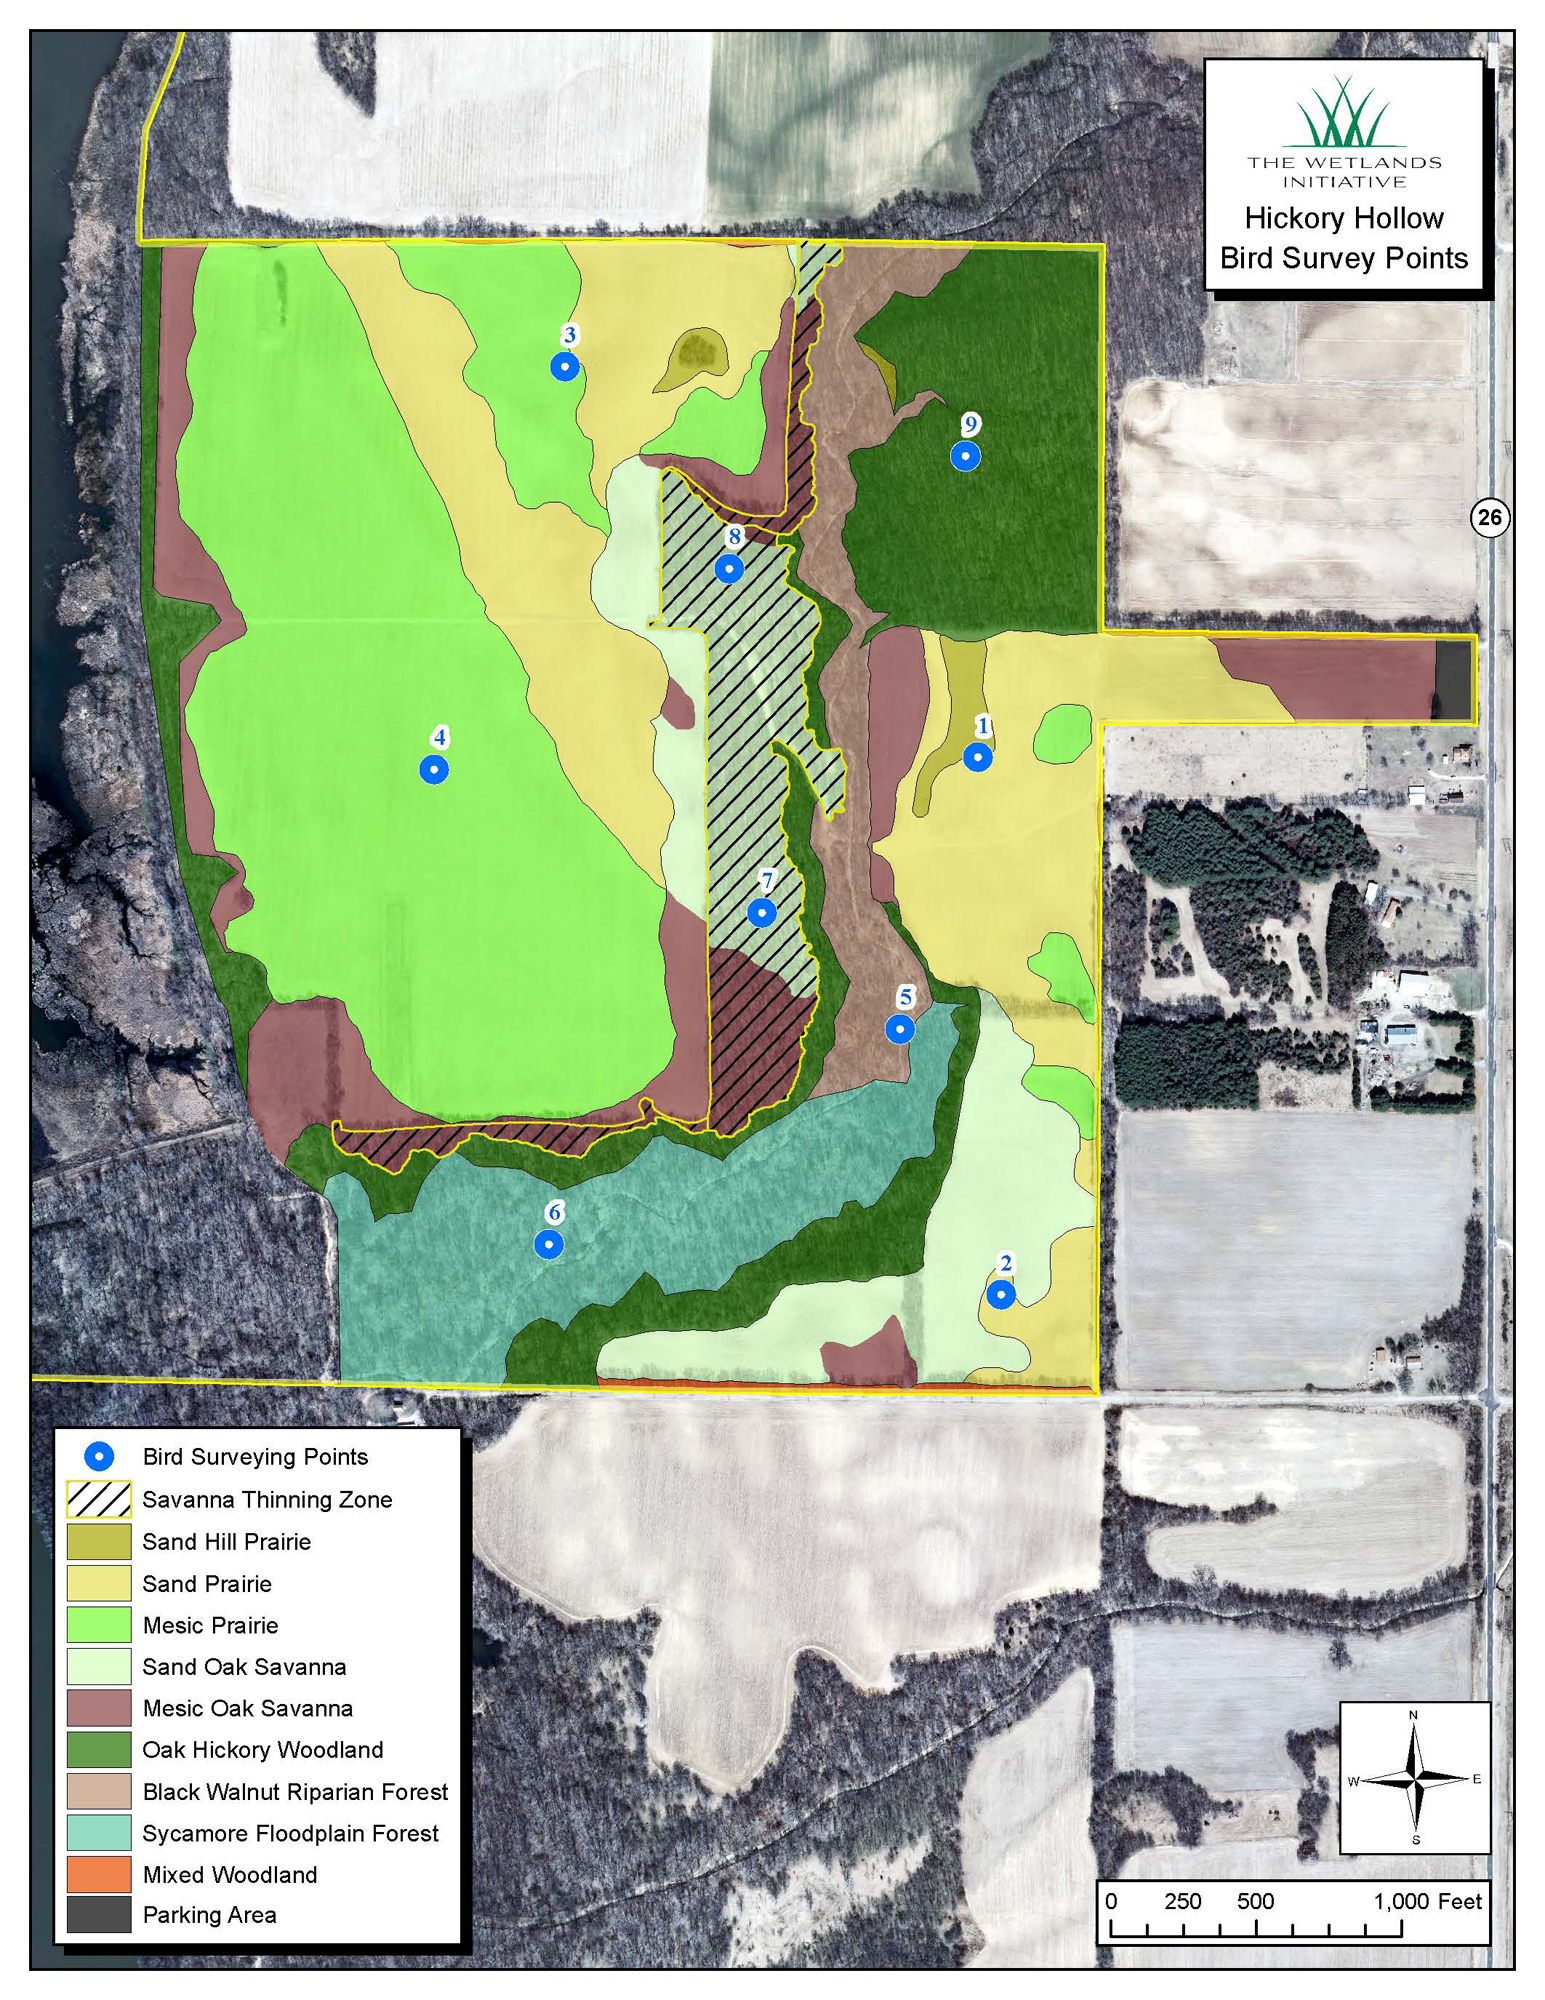 Map of bird surveying points and projected habitats on the Hickory Hollow parcel.